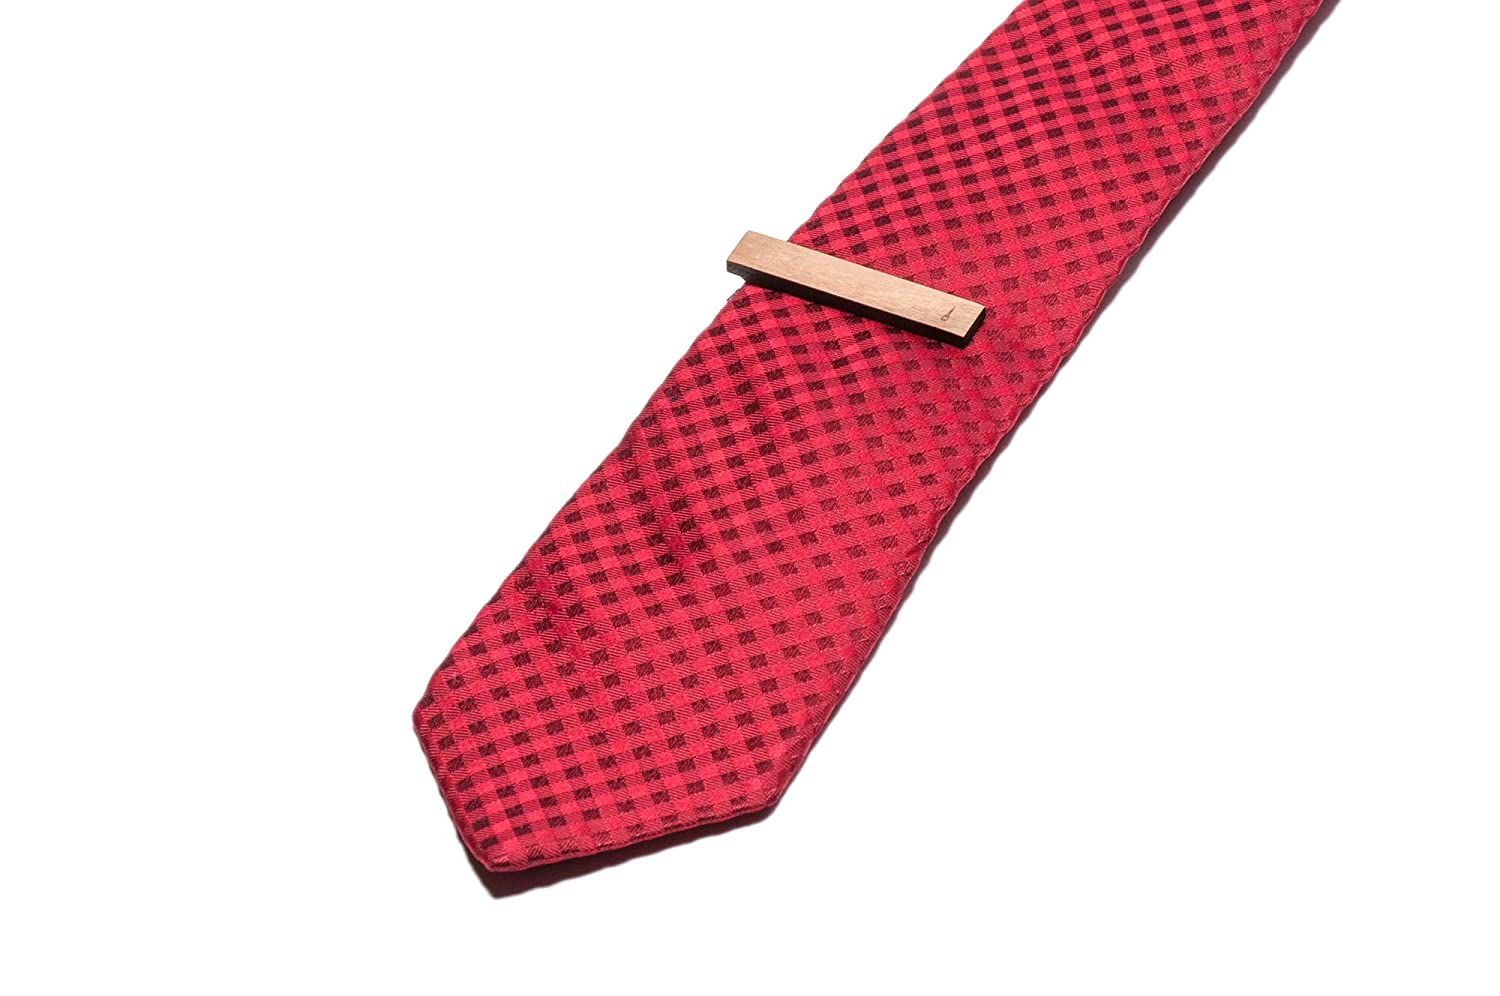 Wooden Accessories Company Wooden Tie Clips with Laser Engraved Oil Dispenser Design Cherry Wood Tie Bar Engraved in The USA